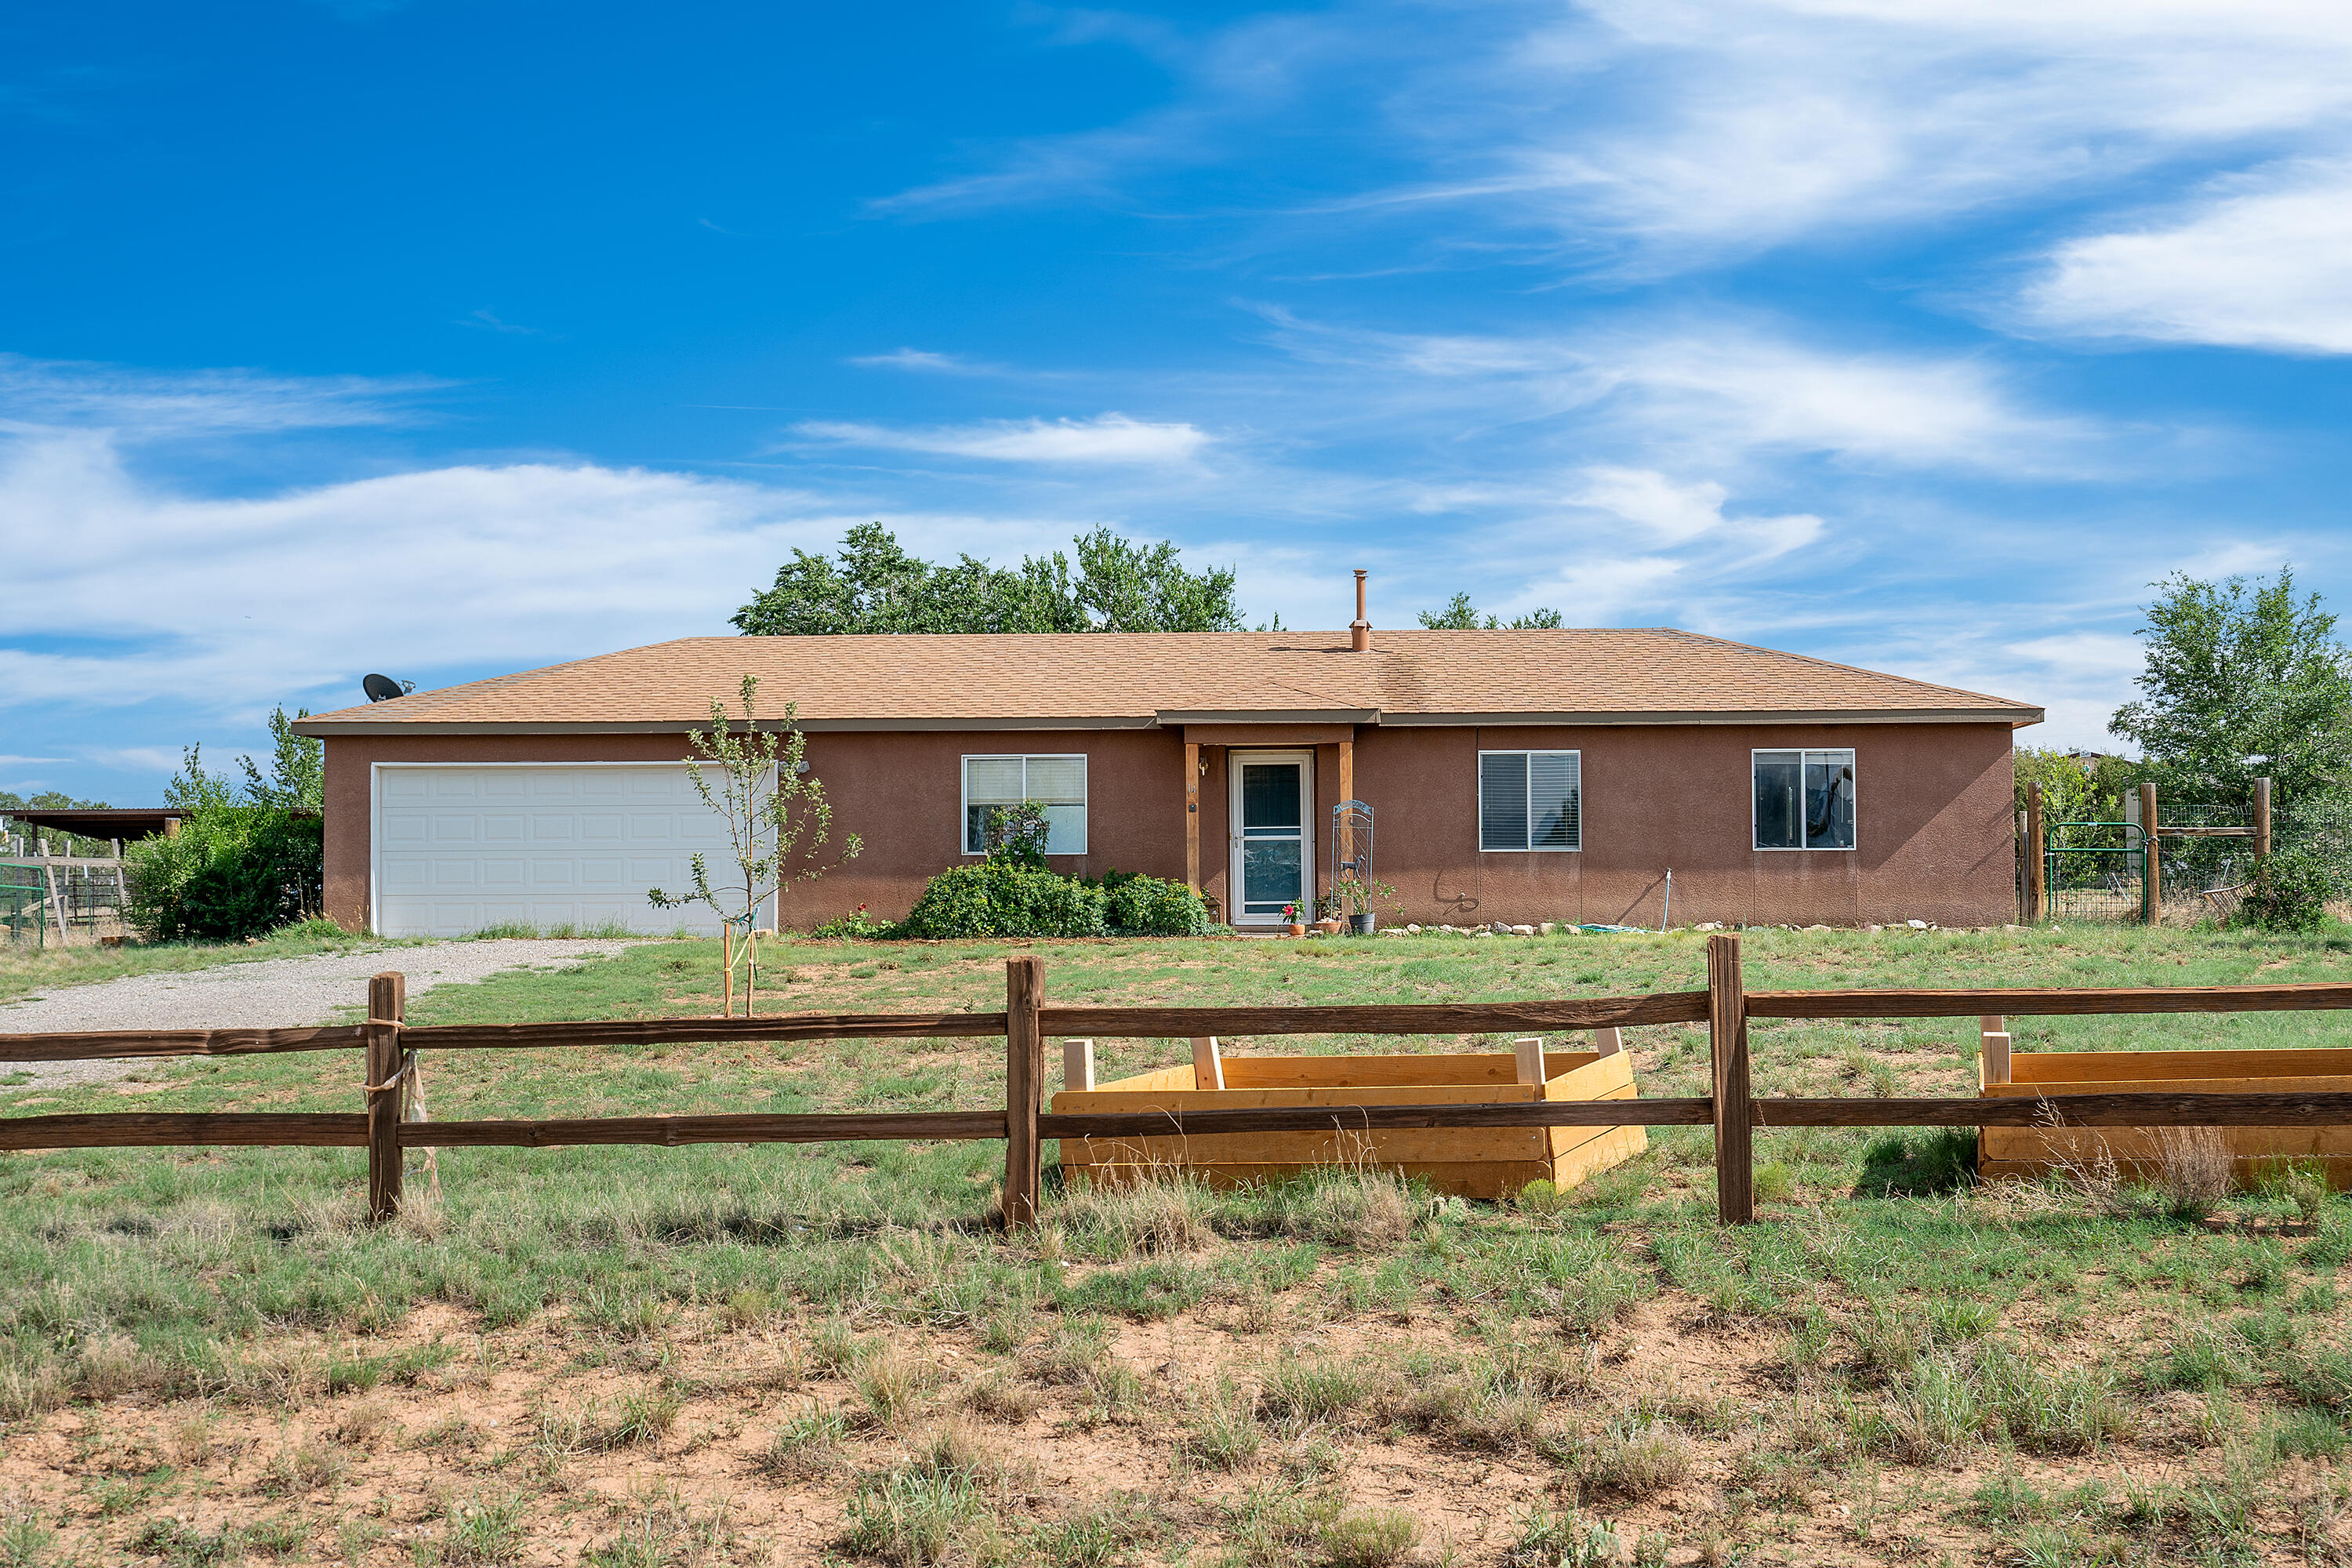 Pride of ownership in this 2 bedroom, 2 full bath home that sits on a fully fenced 1 acre lot. Master bedroom includes spacious walk-in closet. Walk-in pantry and refrigerated air. Beautiful south mountain views. Selling in ''as is'' condition. Shed conveys with property.